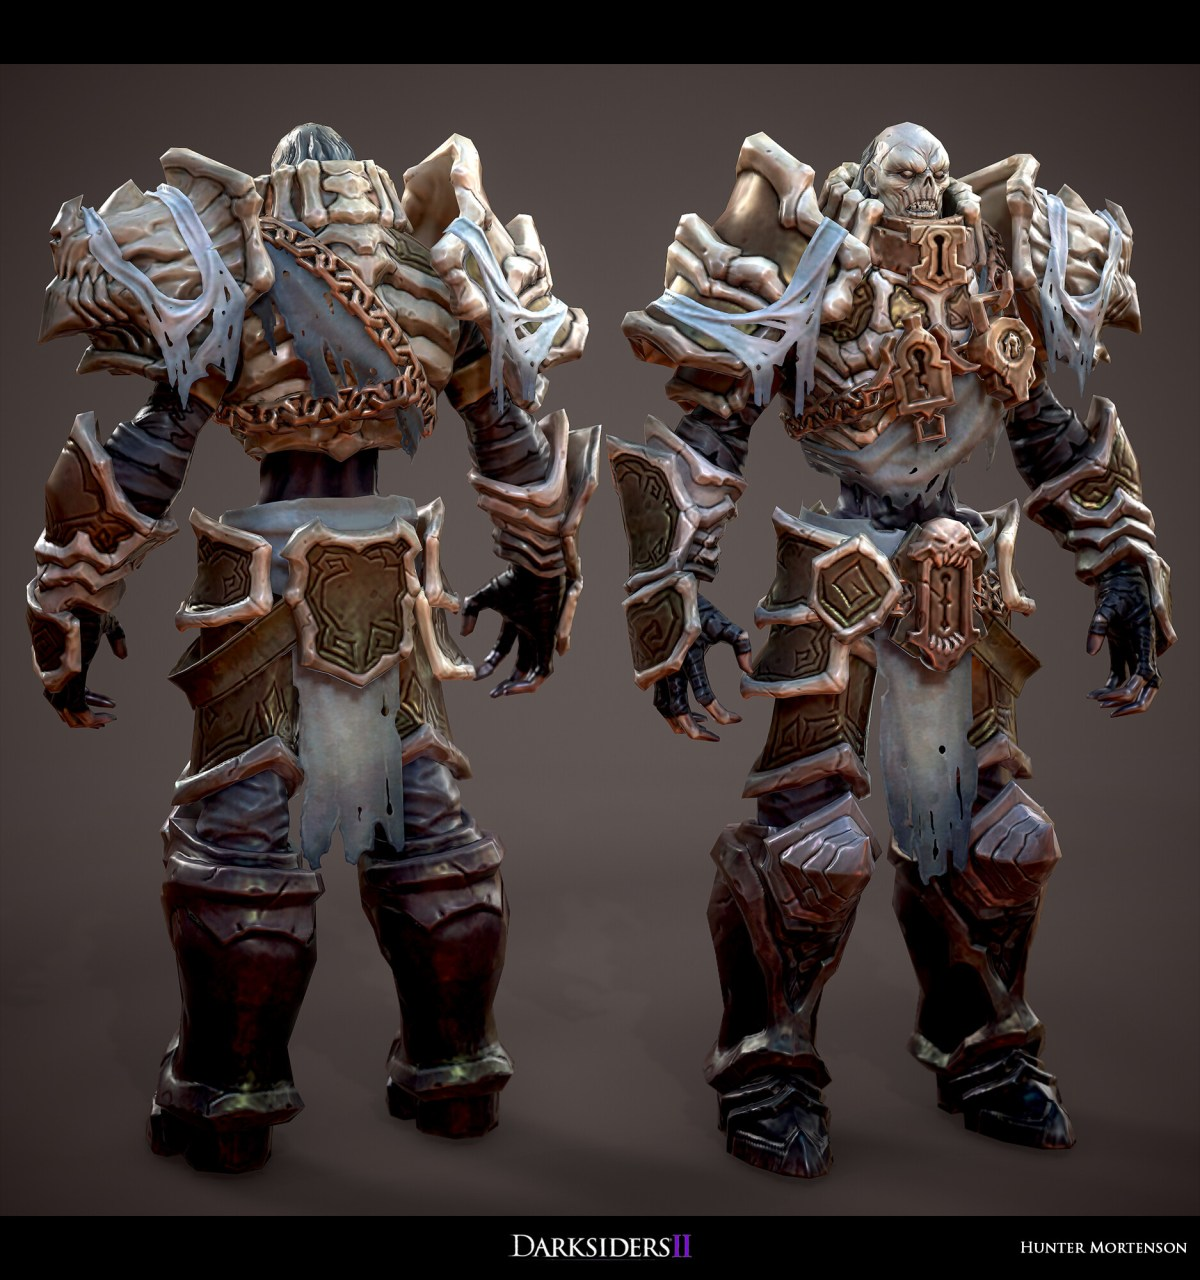 Marmoset render with low res textures